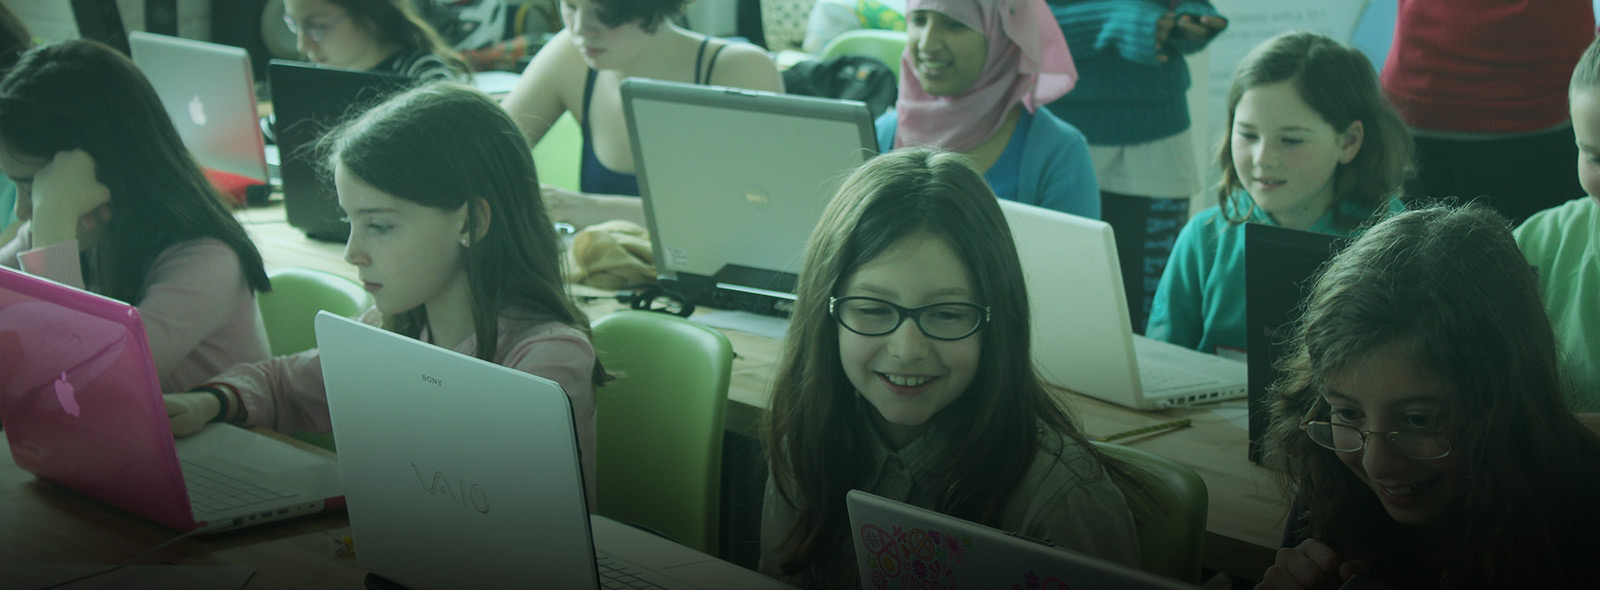 Introducing Girls Learning Code's Web Development Bootcamp for Teens!